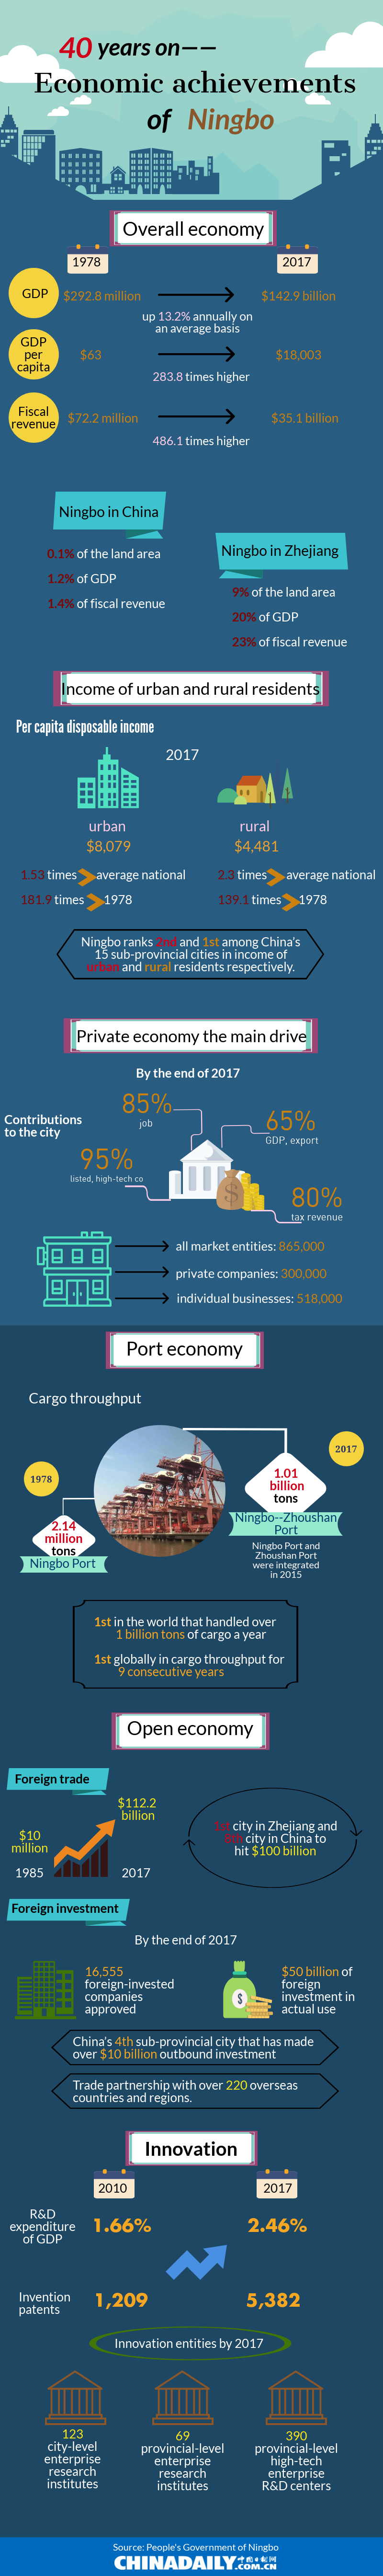 Economic achievements of Ningbo over 40 years (1).png